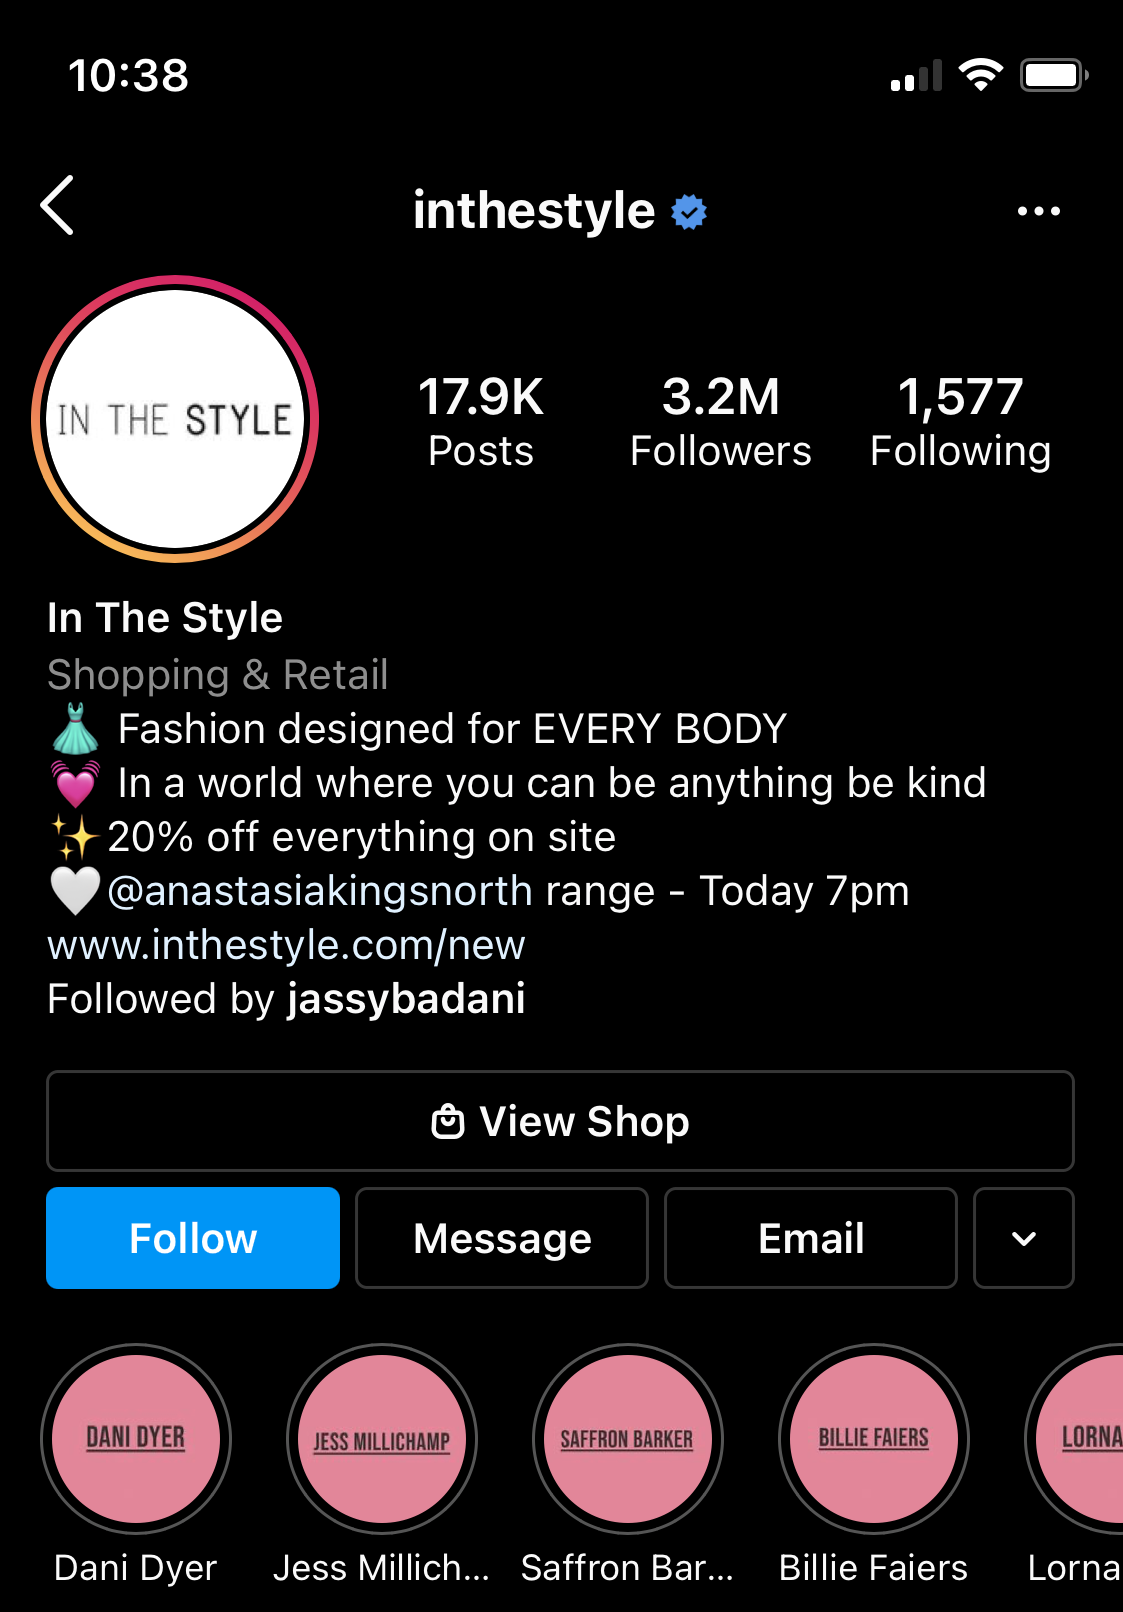 In The Style's Instagram profile